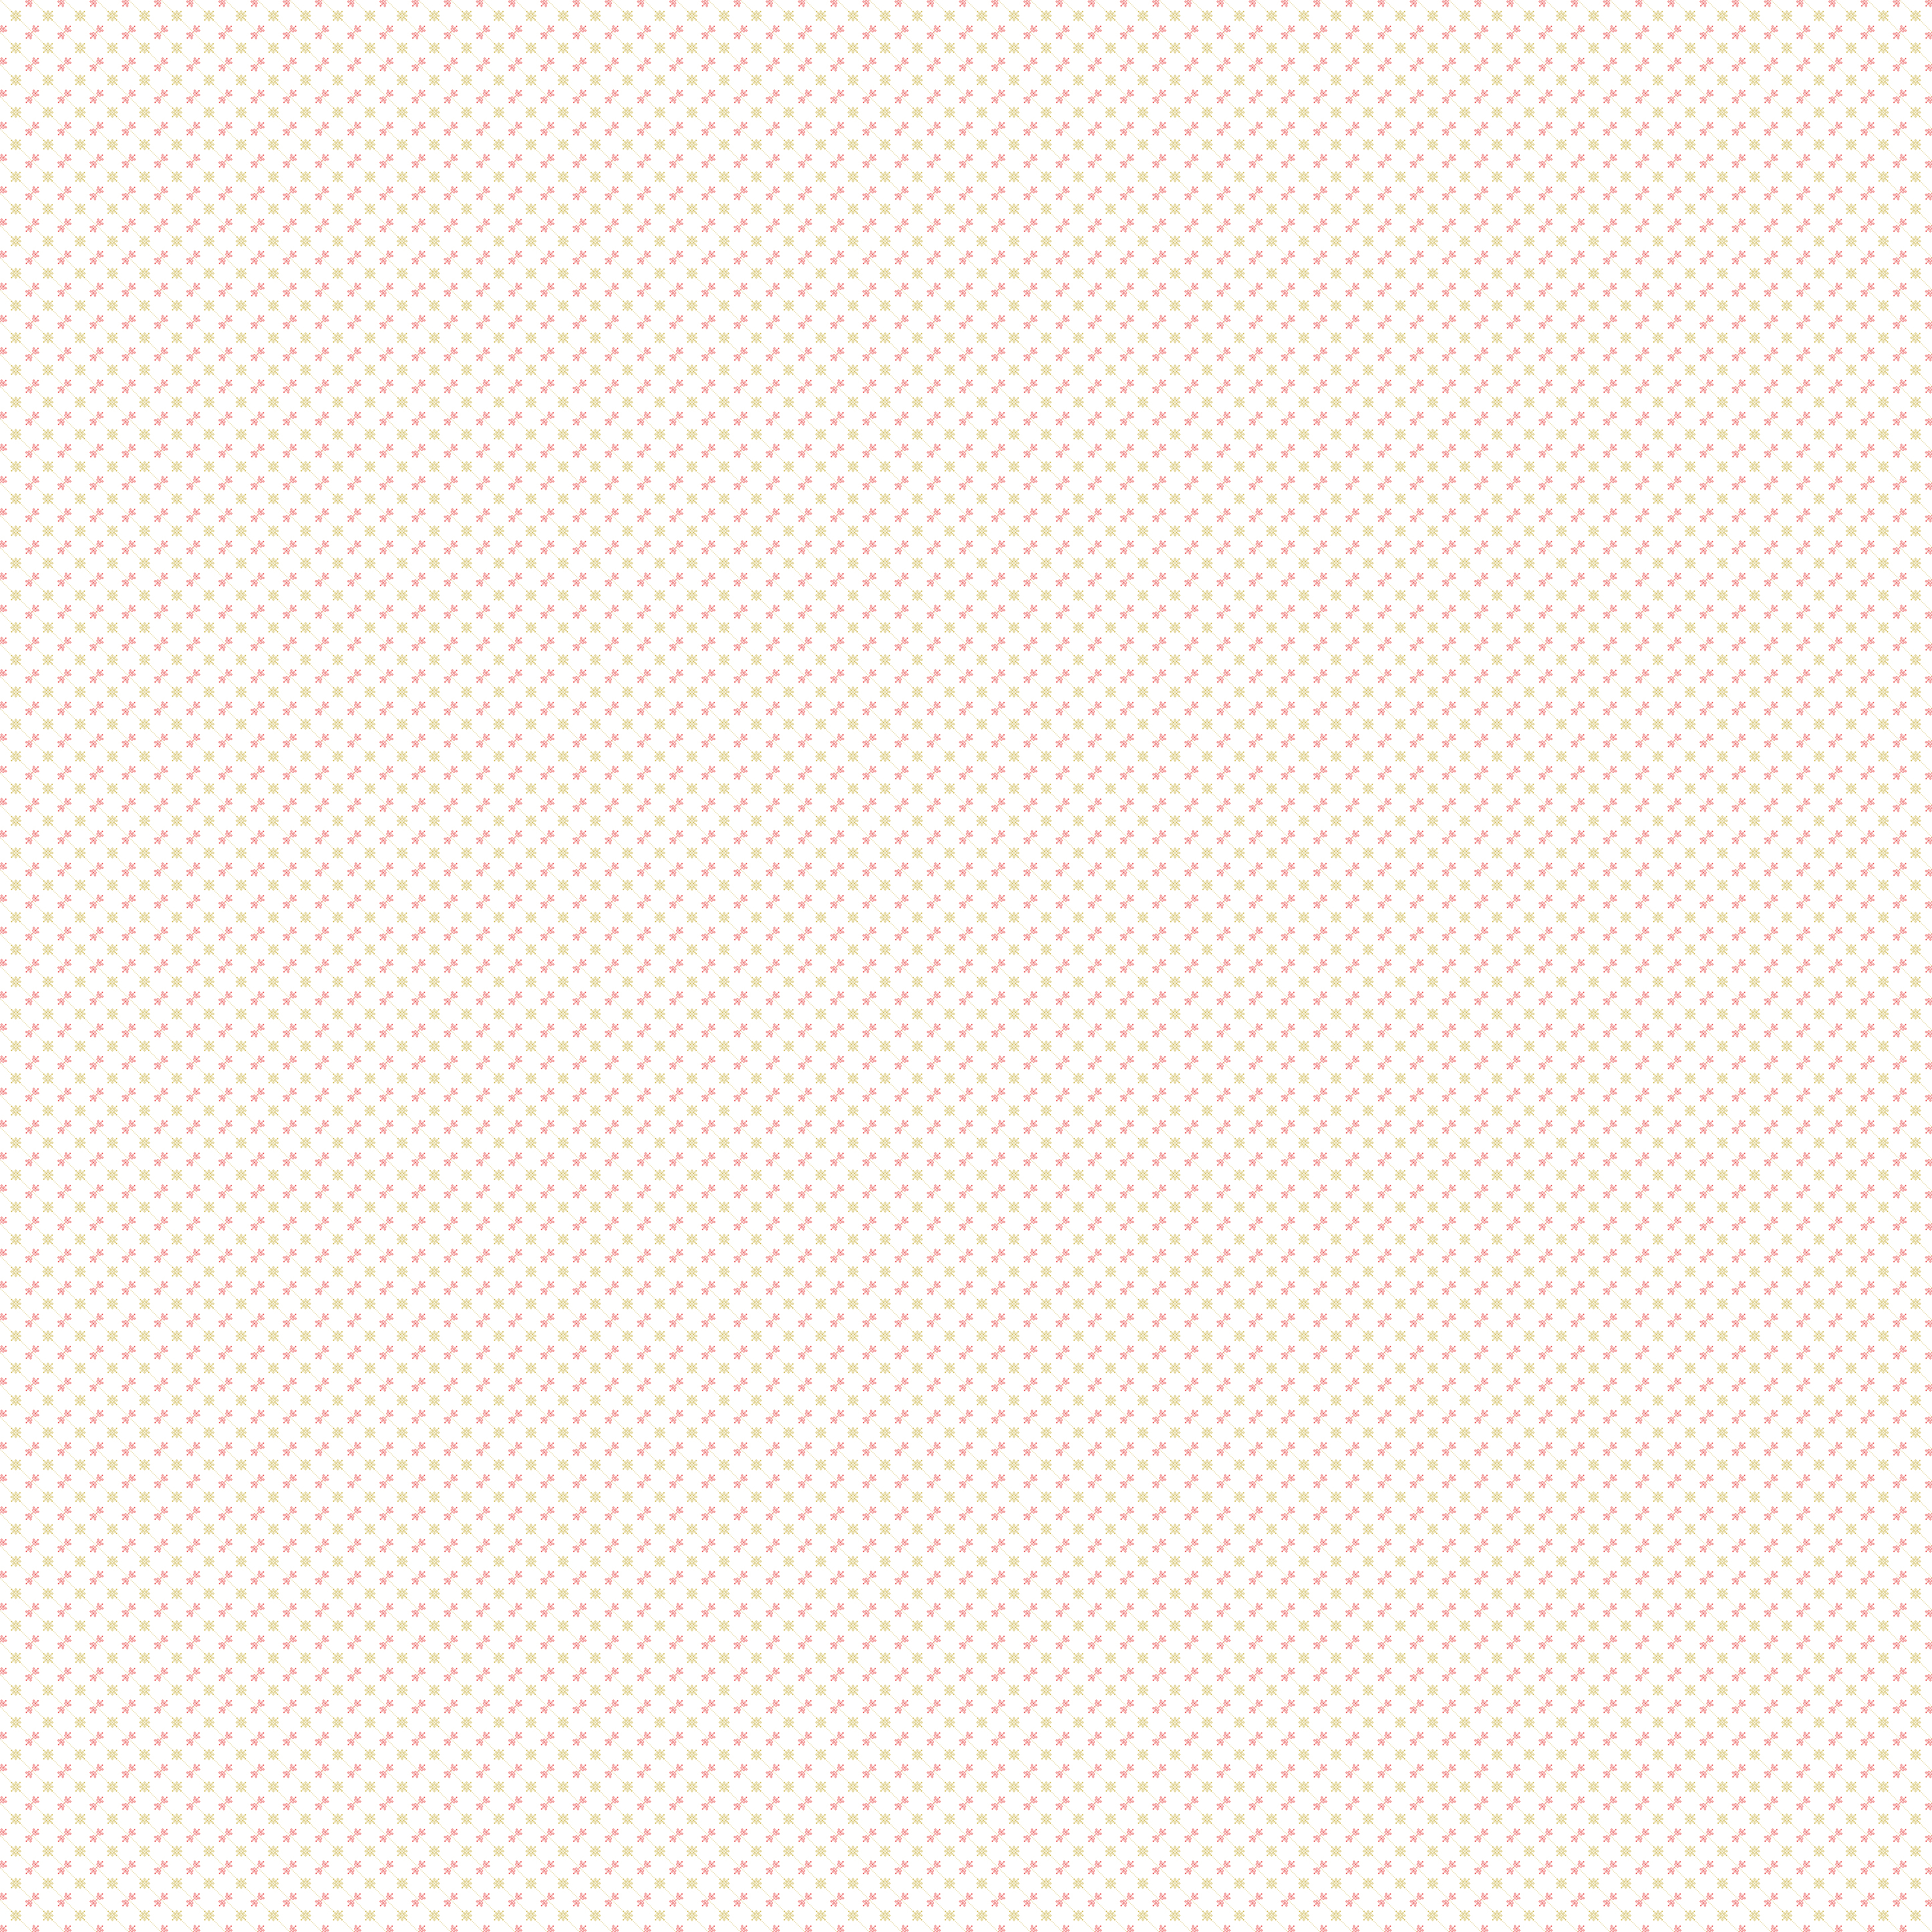 Simple Christmas Wrapping Paper Pattern Background 2